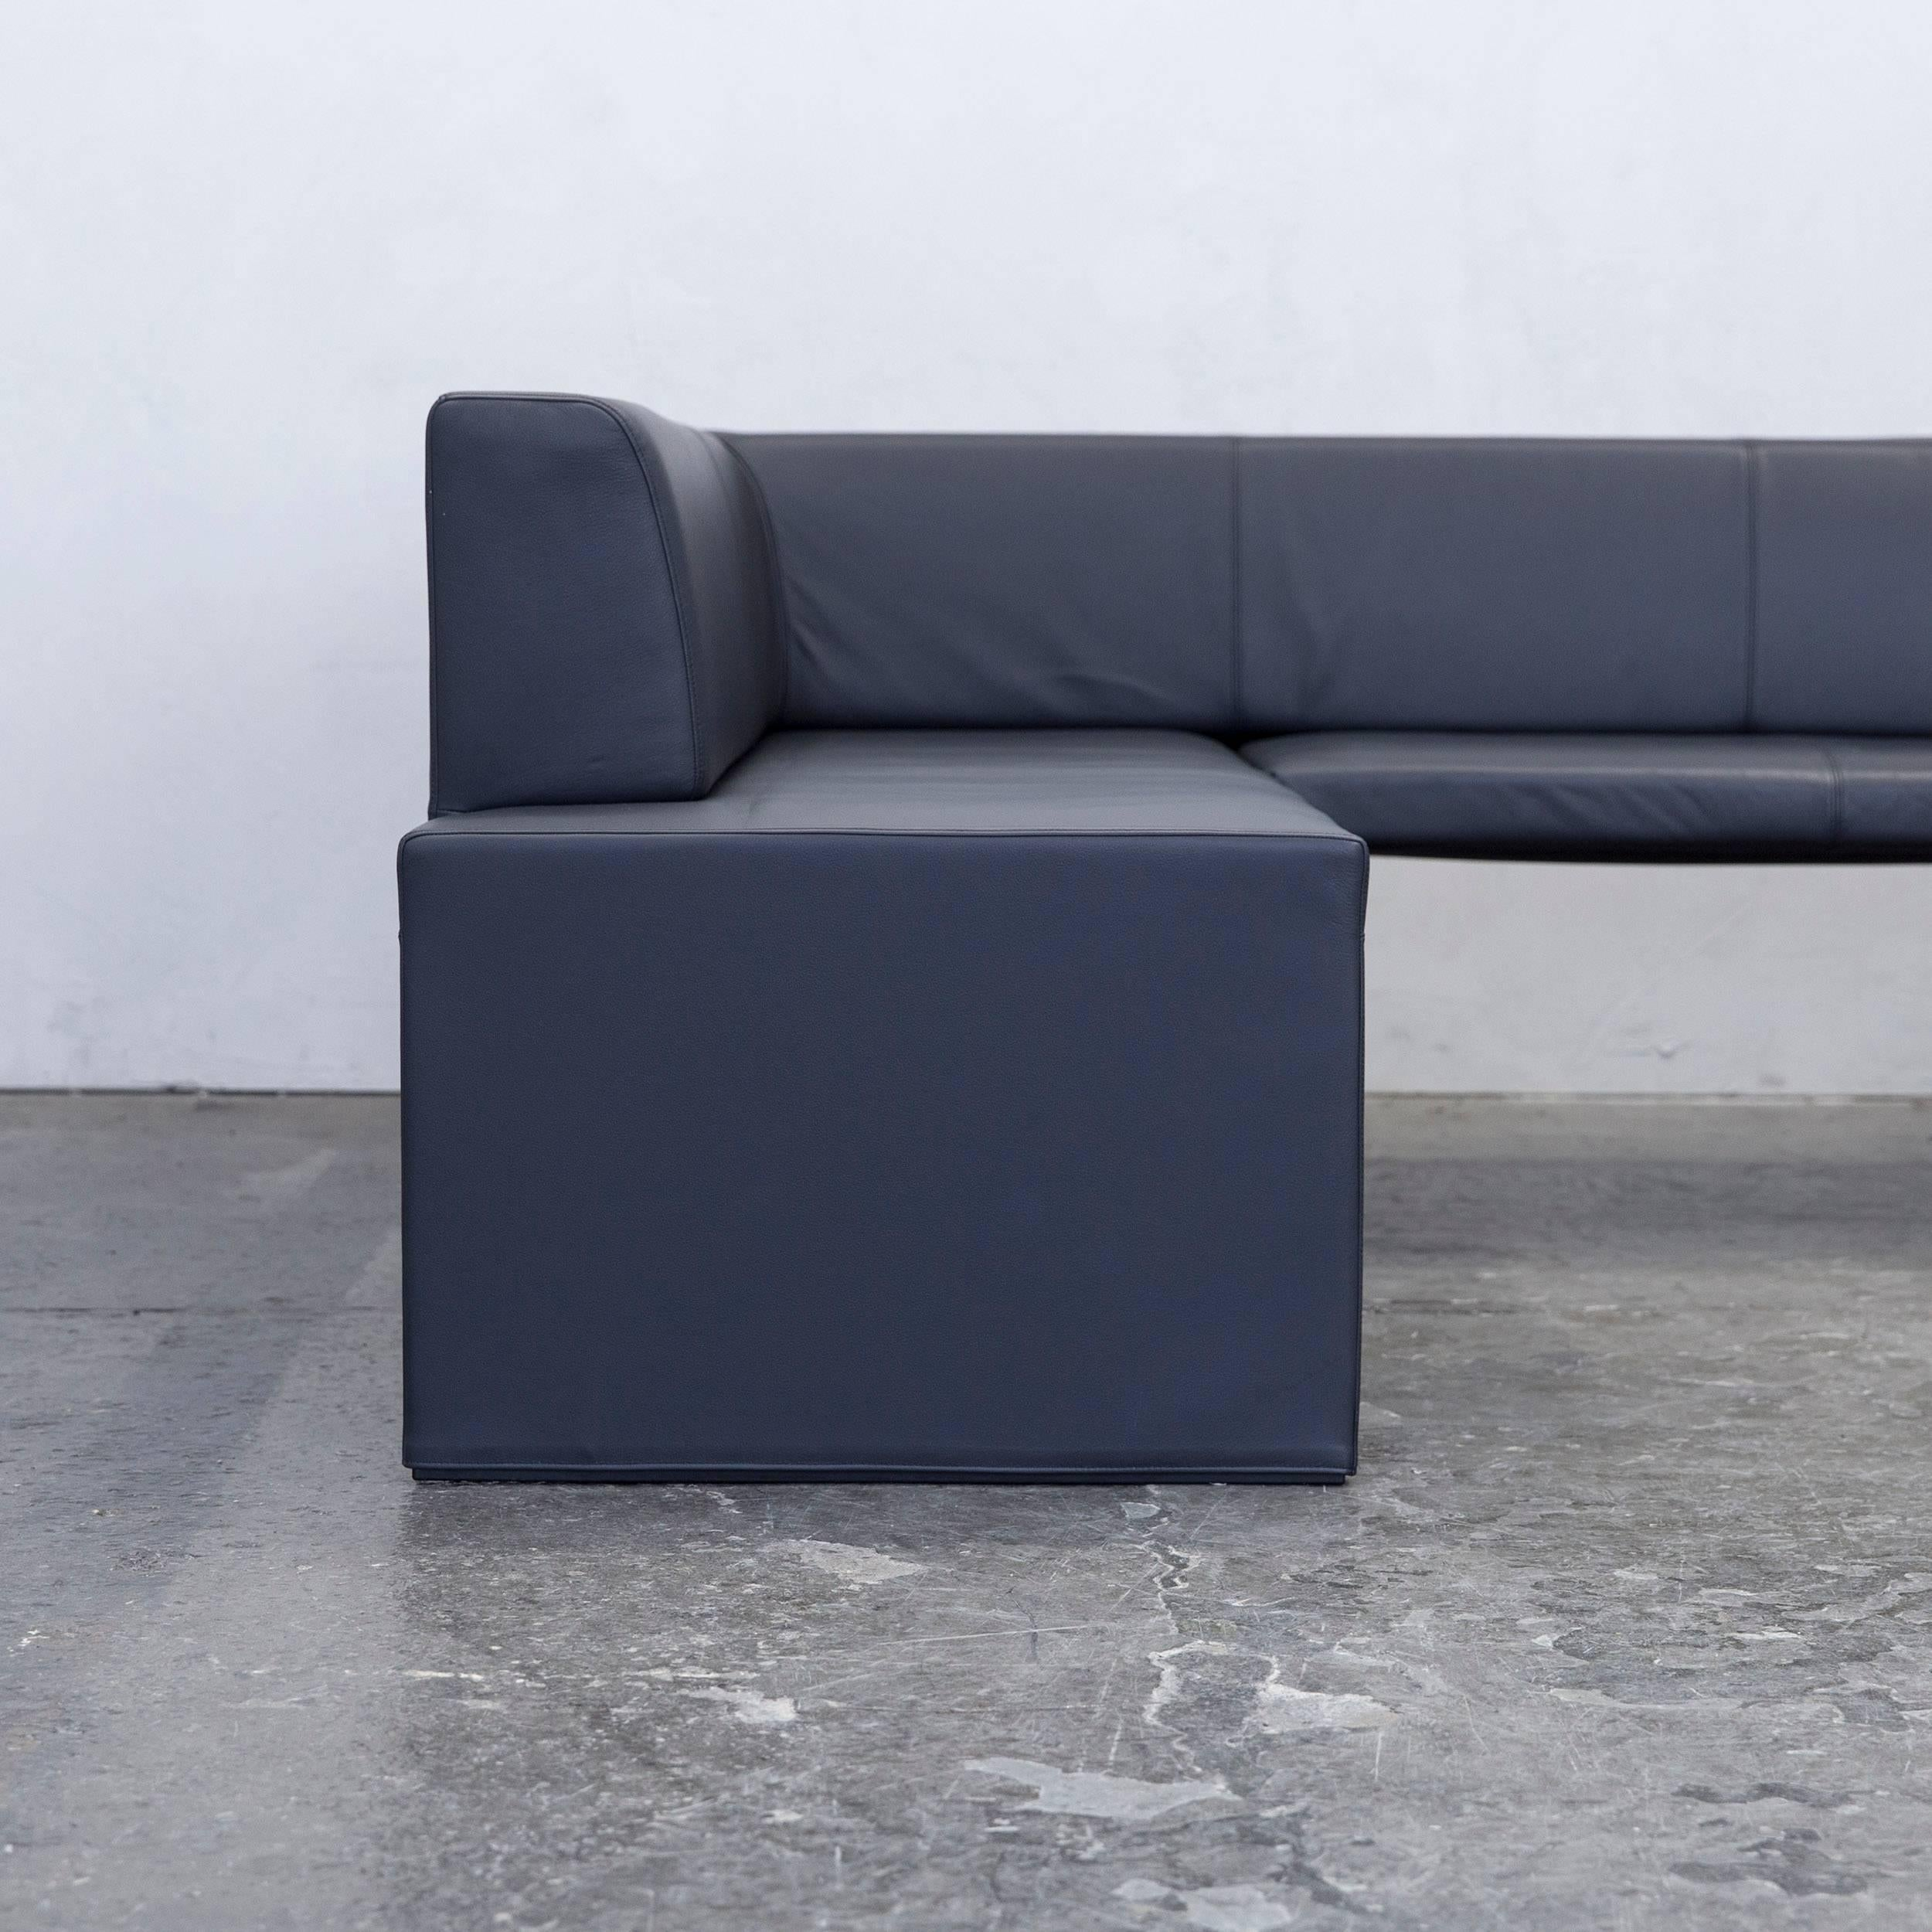 walter knoll jaan sofa simple corner sofa fabric seater gordon by eoos with walter knoll jaan. Black Bedroom Furniture Sets. Home Design Ideas